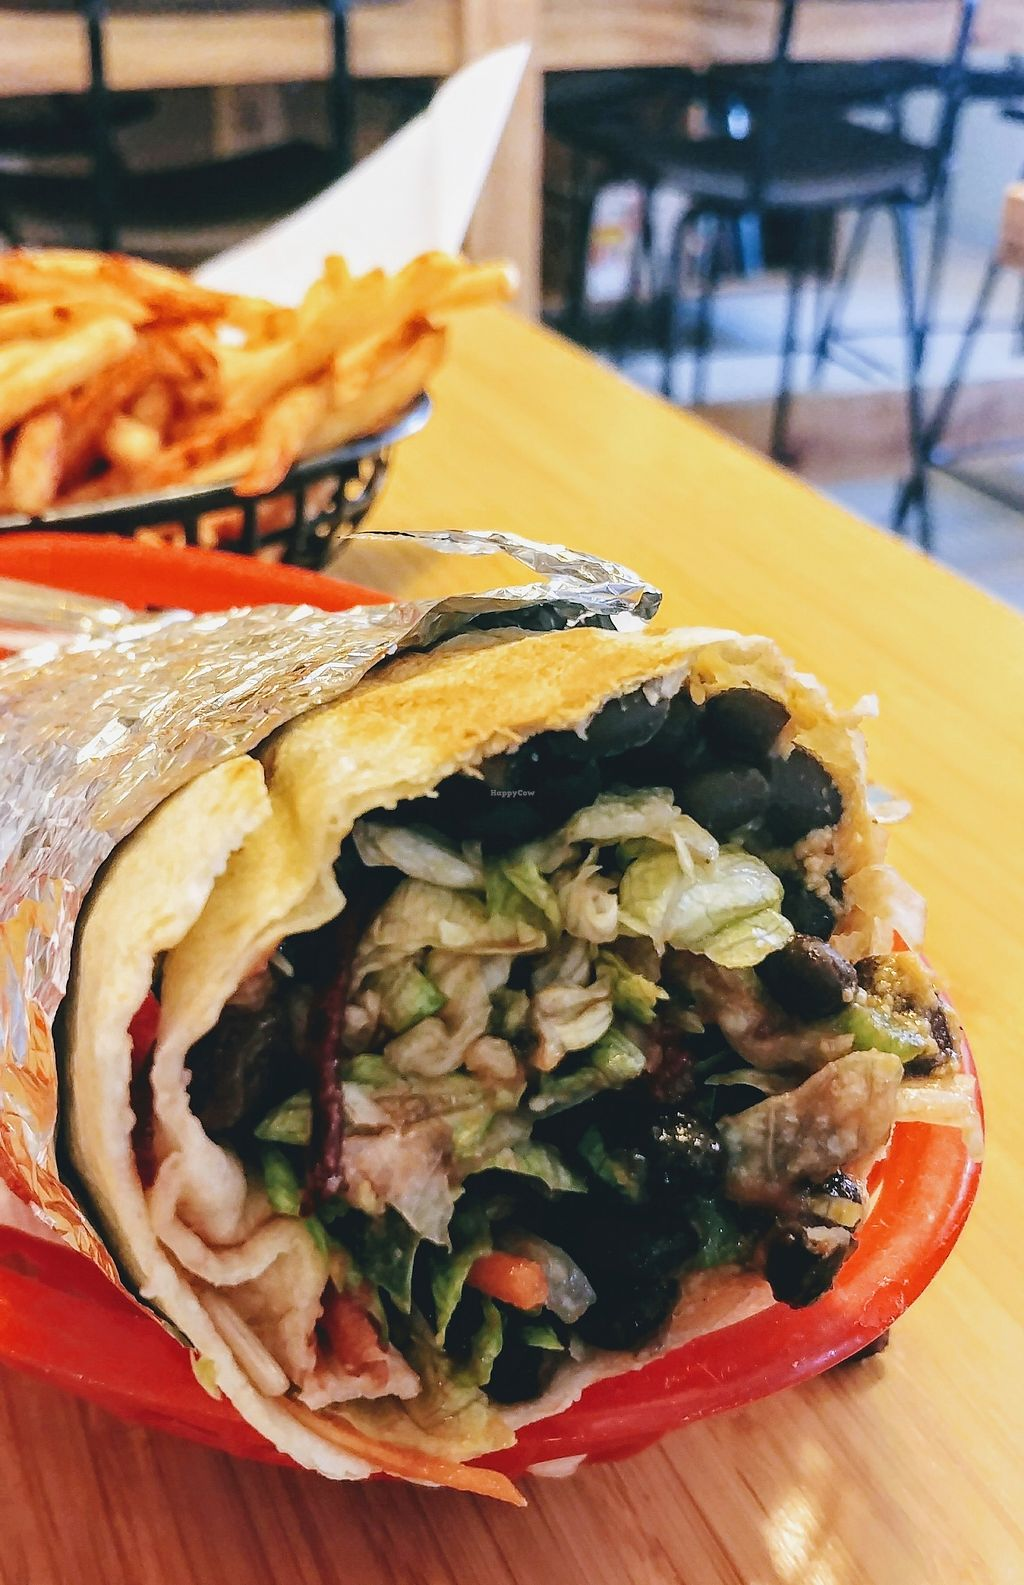 """Photo of Trippy Taco   by <a href=""""/members/profile/karlaess"""">karlaess</a> <br/>Original burrito (veganised) <br/> January 27, 2018  - <a href='/contact/abuse/image/69539/351636'>Report</a>"""